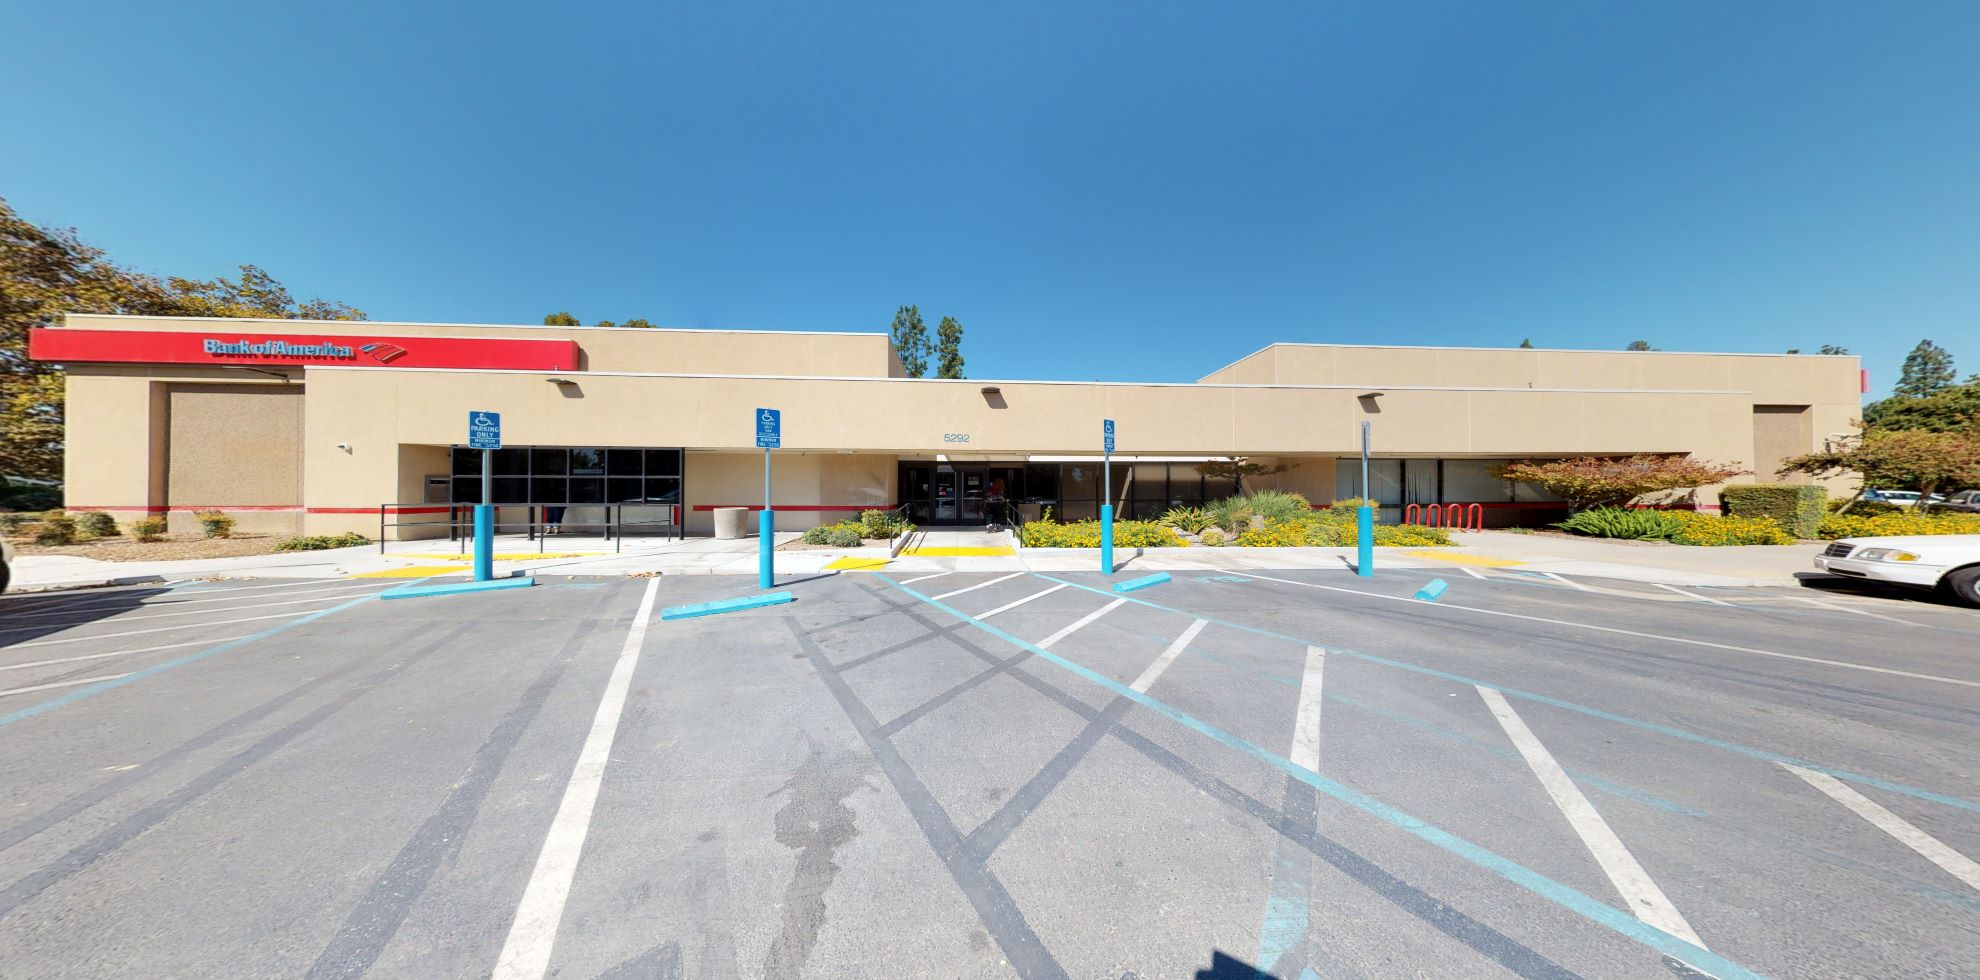 Bank of America financial center with walk-up ATM | 5292 N Palm Ave, Fresno, CA 93704